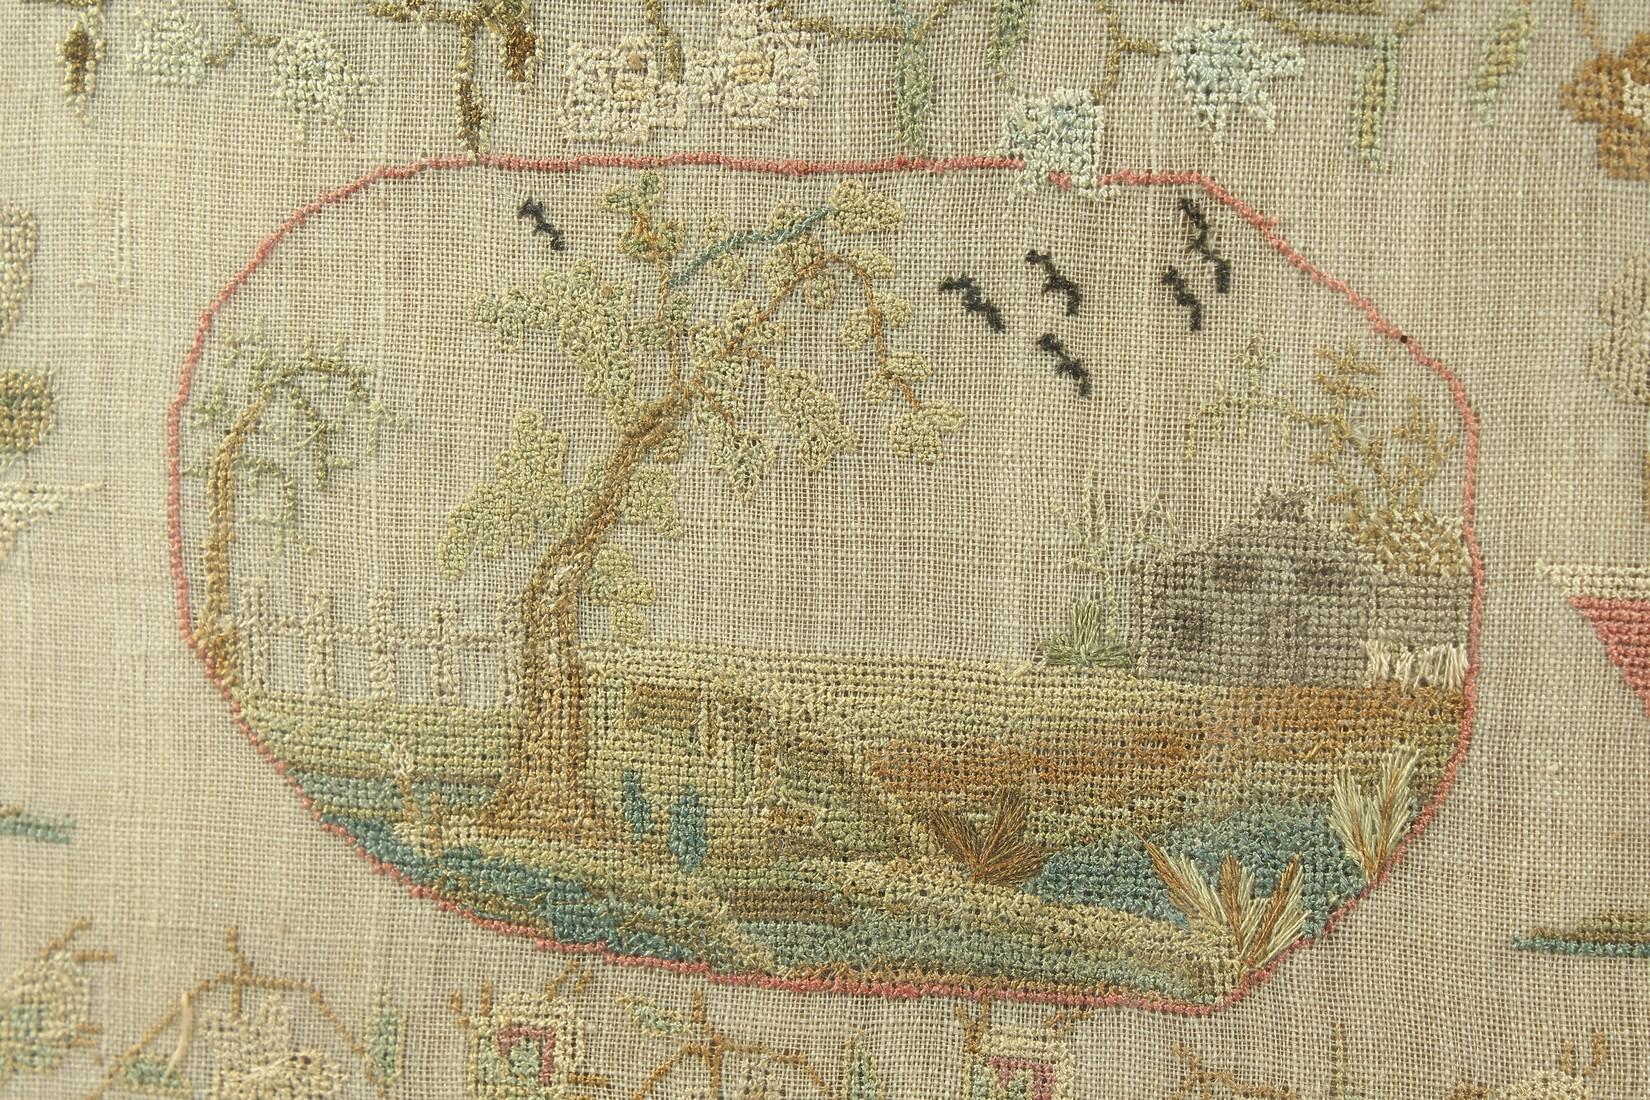 A GEORGE III FRAMED AND GLAZED SAMPLER by Roberta Allerton, 1787, with a poem, birds, flowers etc. - Image 6 of 7